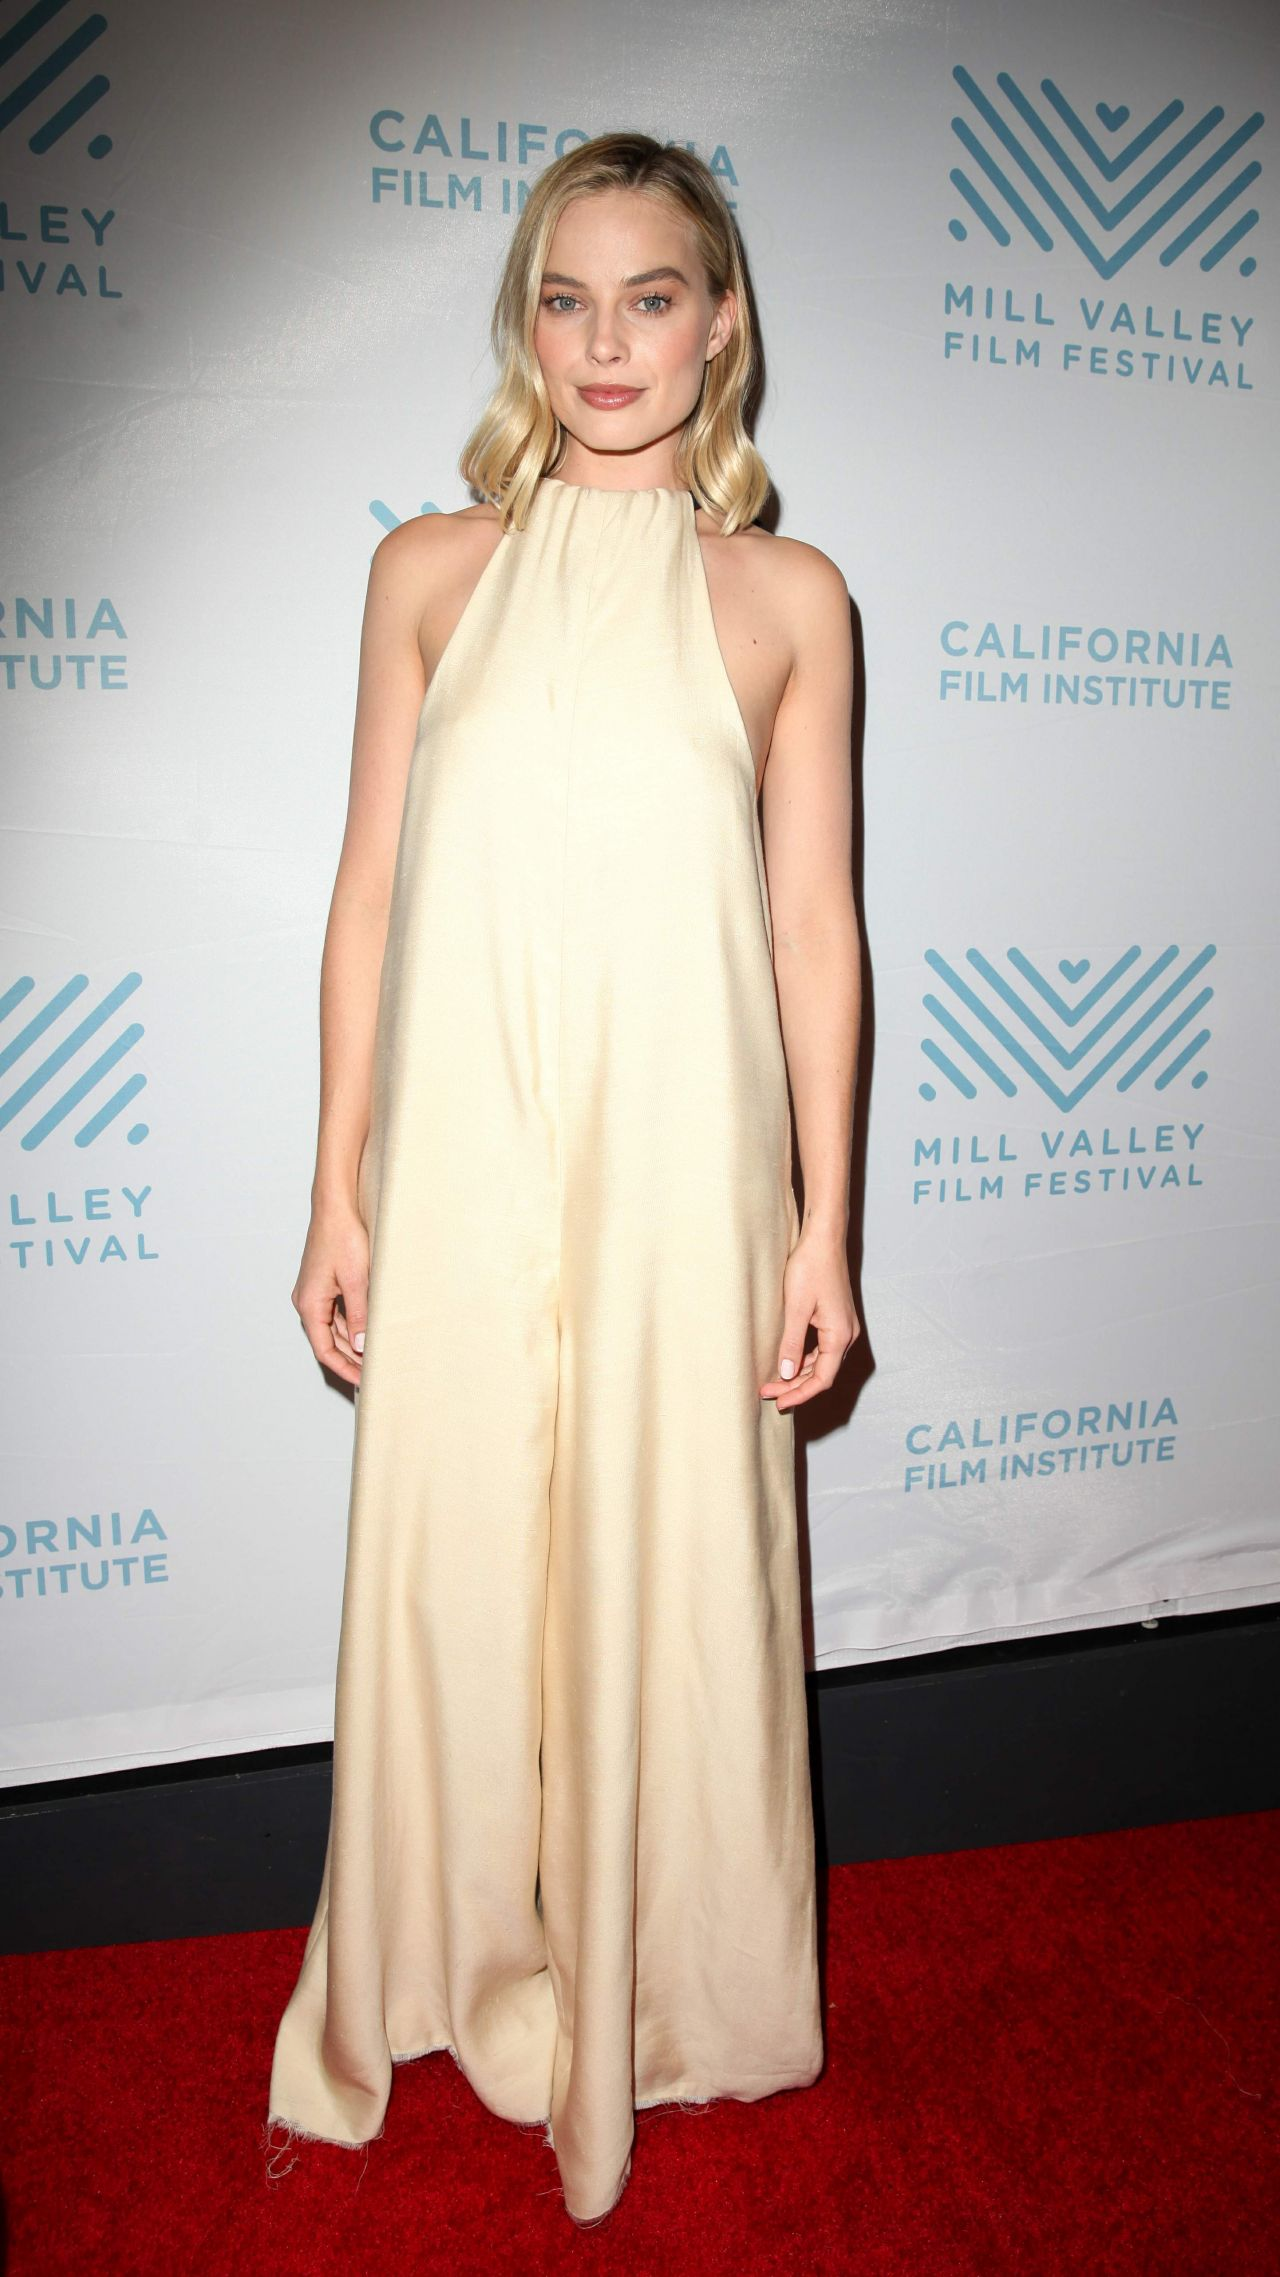 http://celebmafia.com/wp-content/uploads/2017/12/margot-robbie-california-film-institute-premiere-of-i-tonya-in-san-rafael-12-02-2017-2.jpg